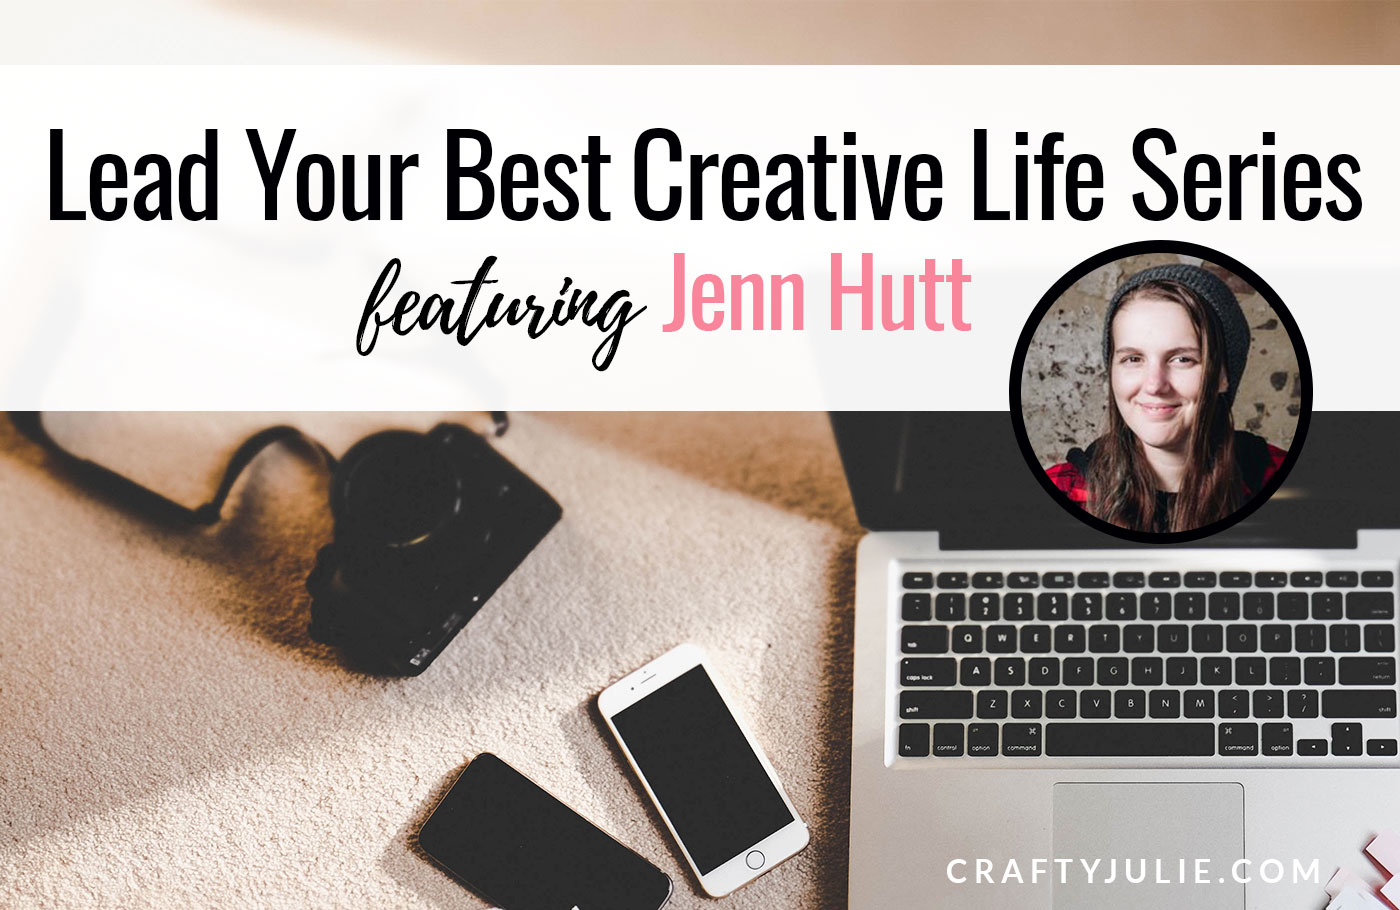 Crafty Julie | Lead Your Best Creative Life | featuring Jenn Hutt